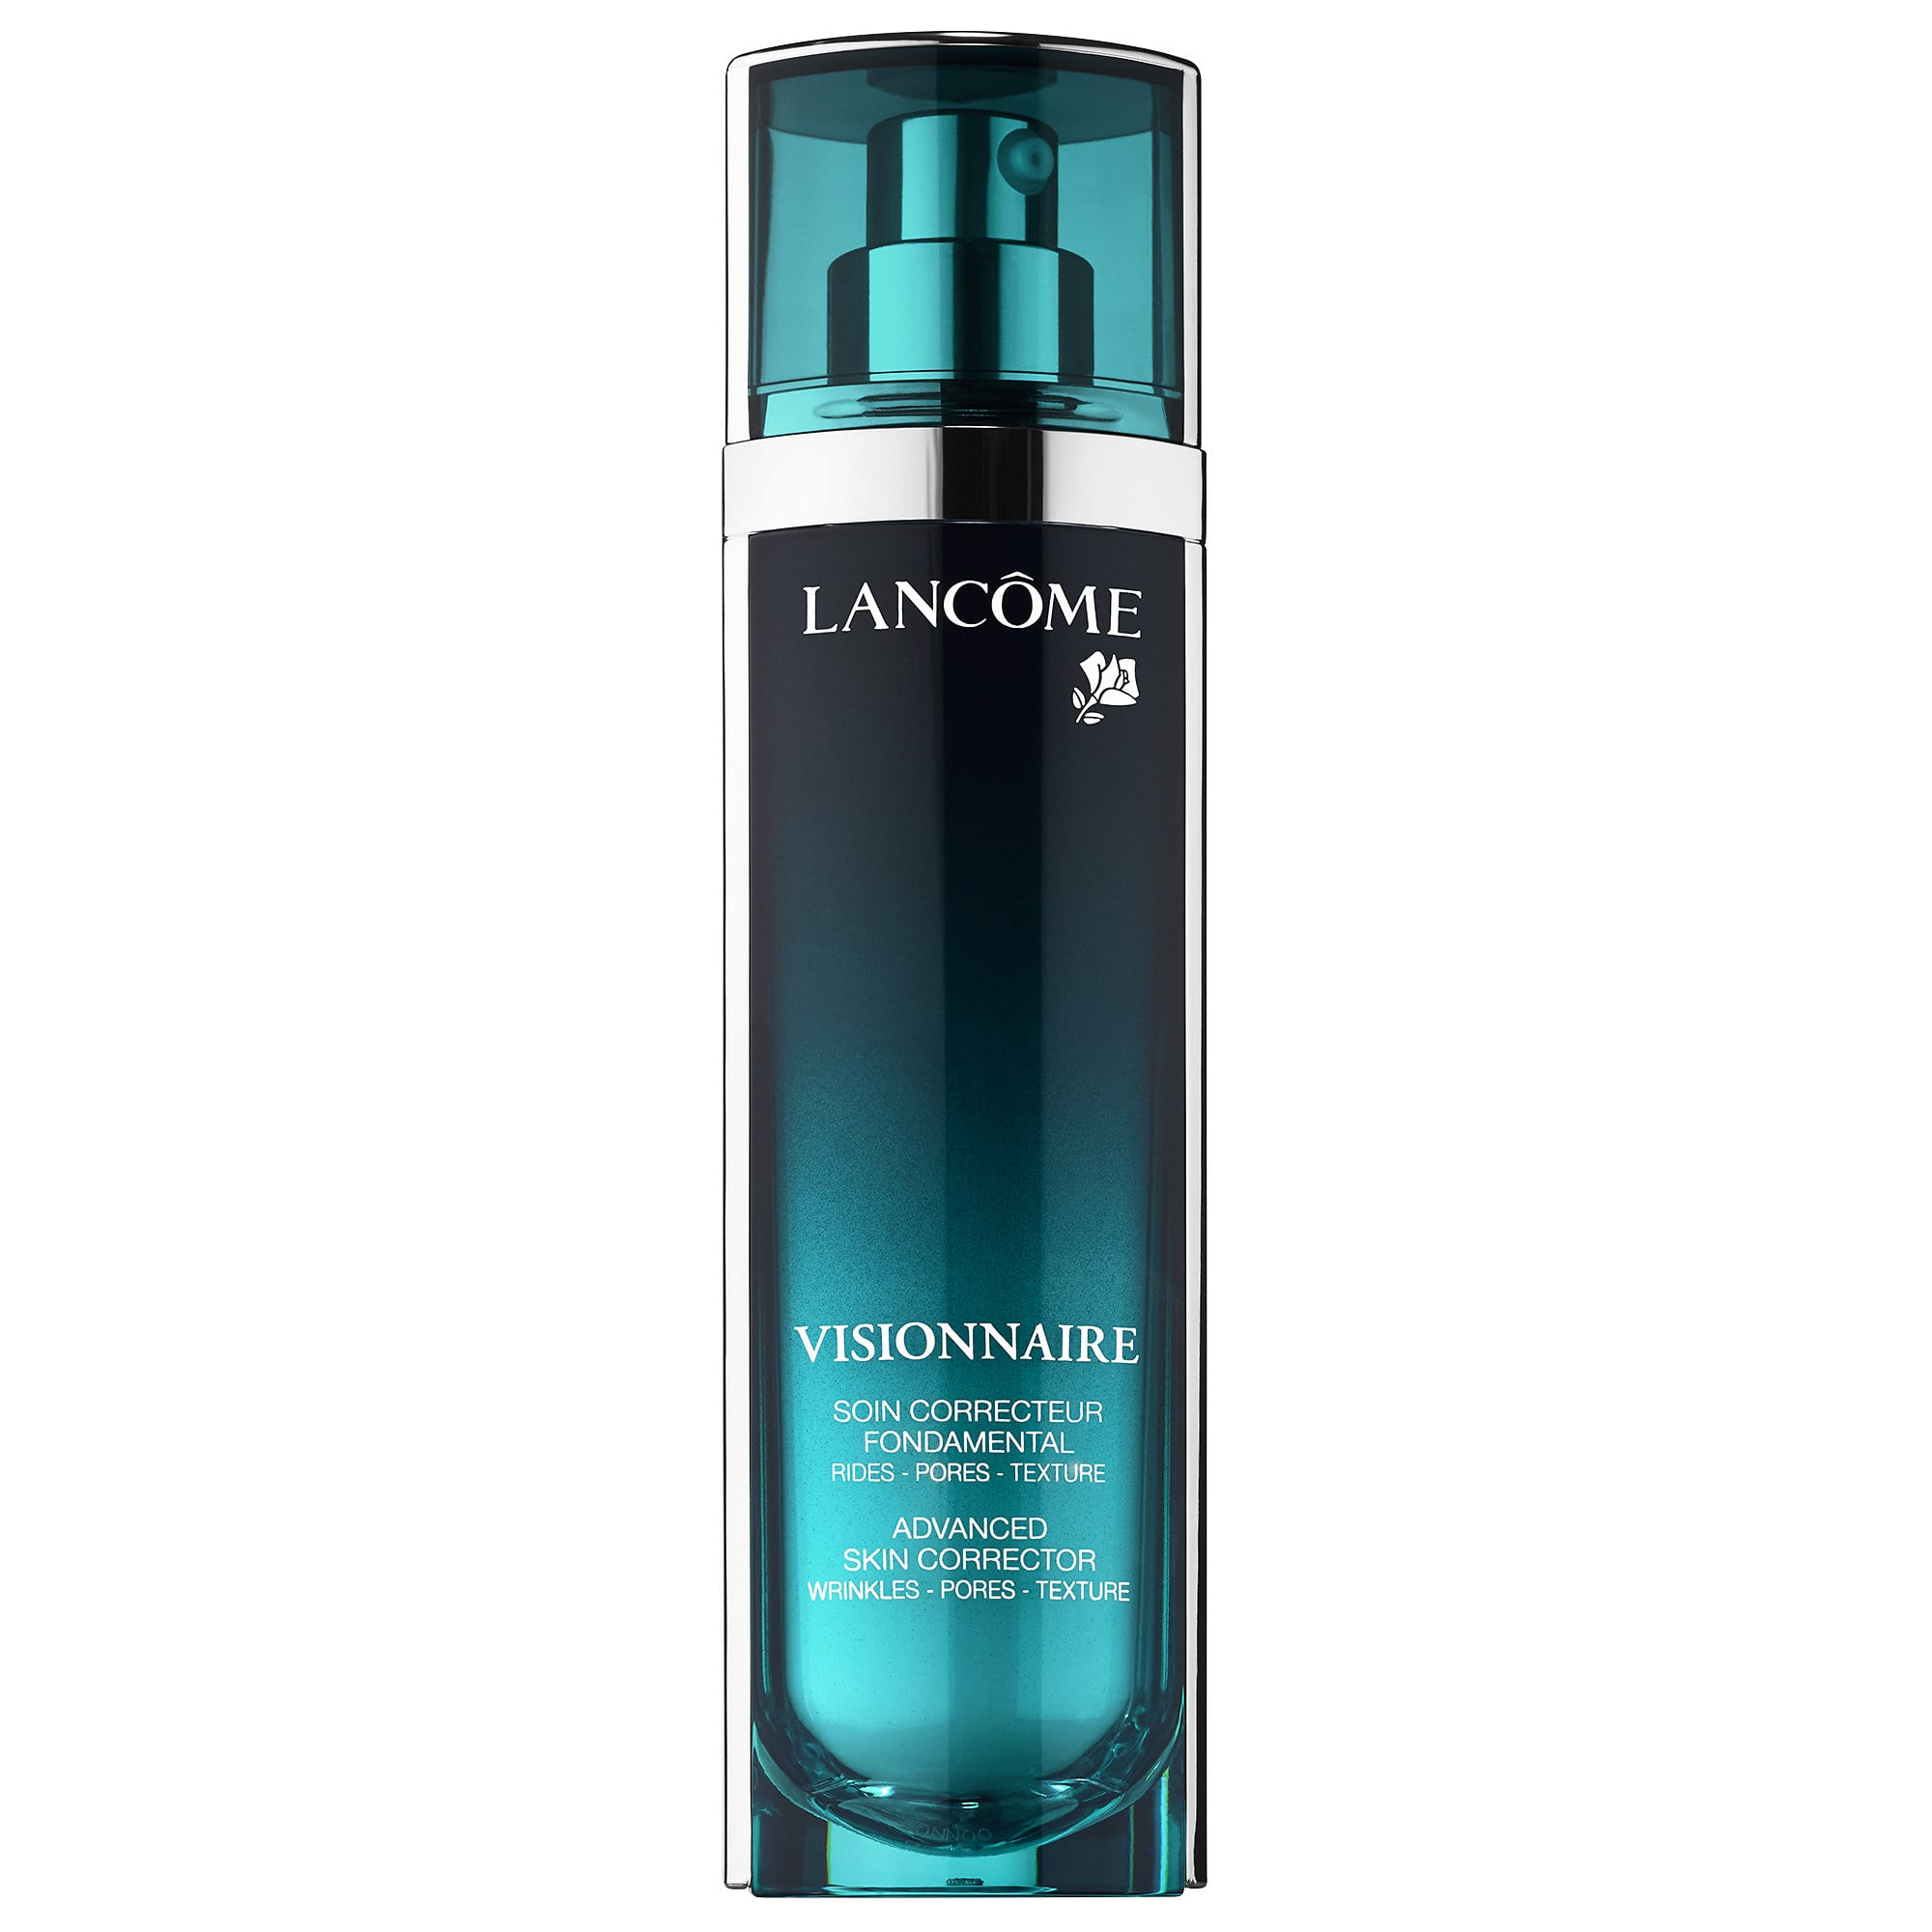 Lancome Visionnaire Advanced Skin Corrector 30 ml